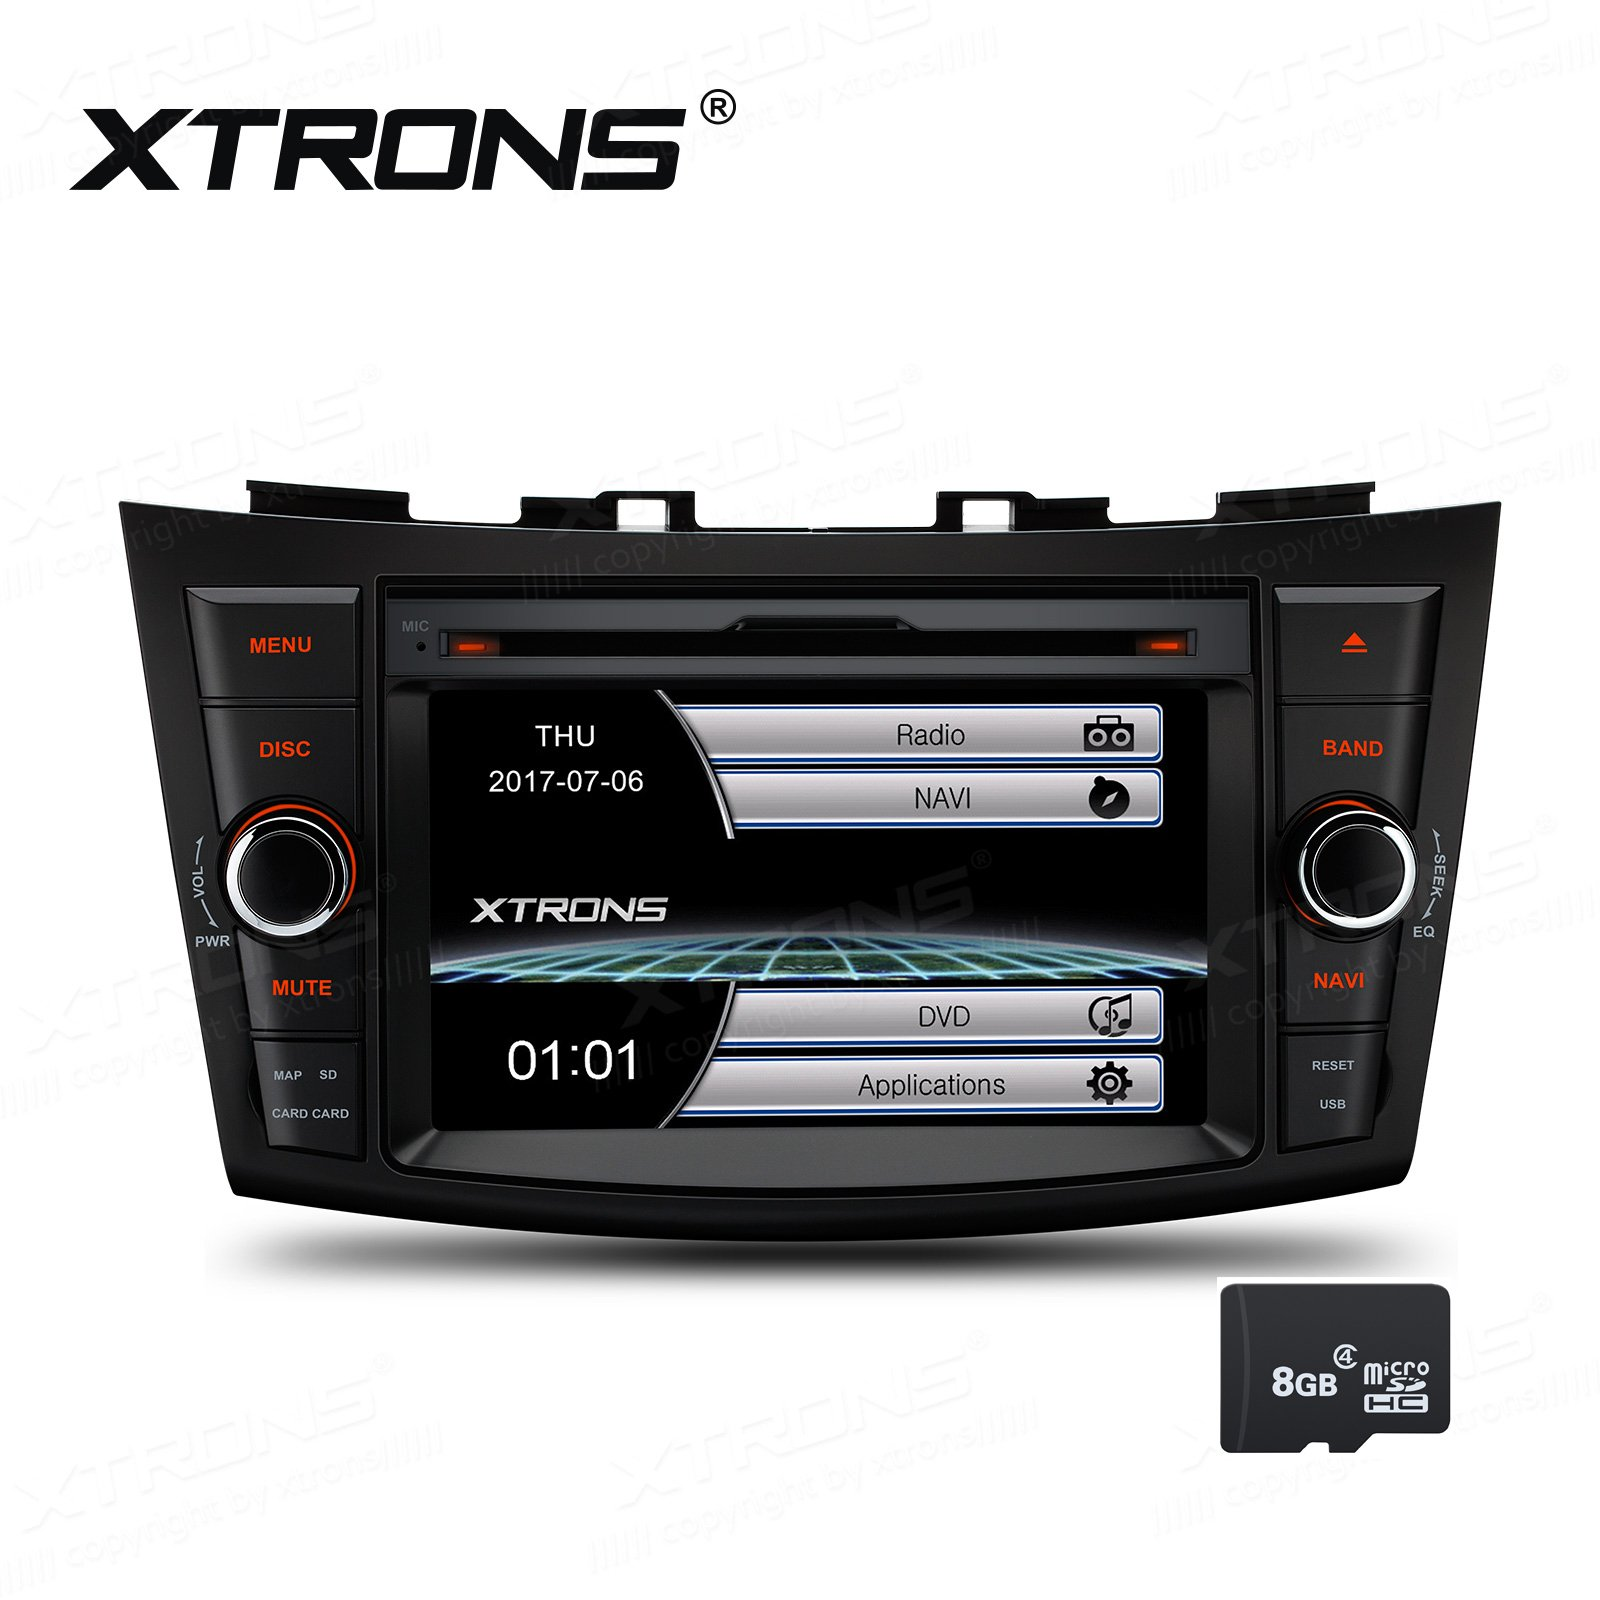 XTRONS 7 Inch HD Digital Touch Screen Car Stereo In-Dash DVD Player with GPS CANbus Screen Mirroring for Suzuki Swift Ertiga Kudos Map Card Included by XTRONS (Image #1)